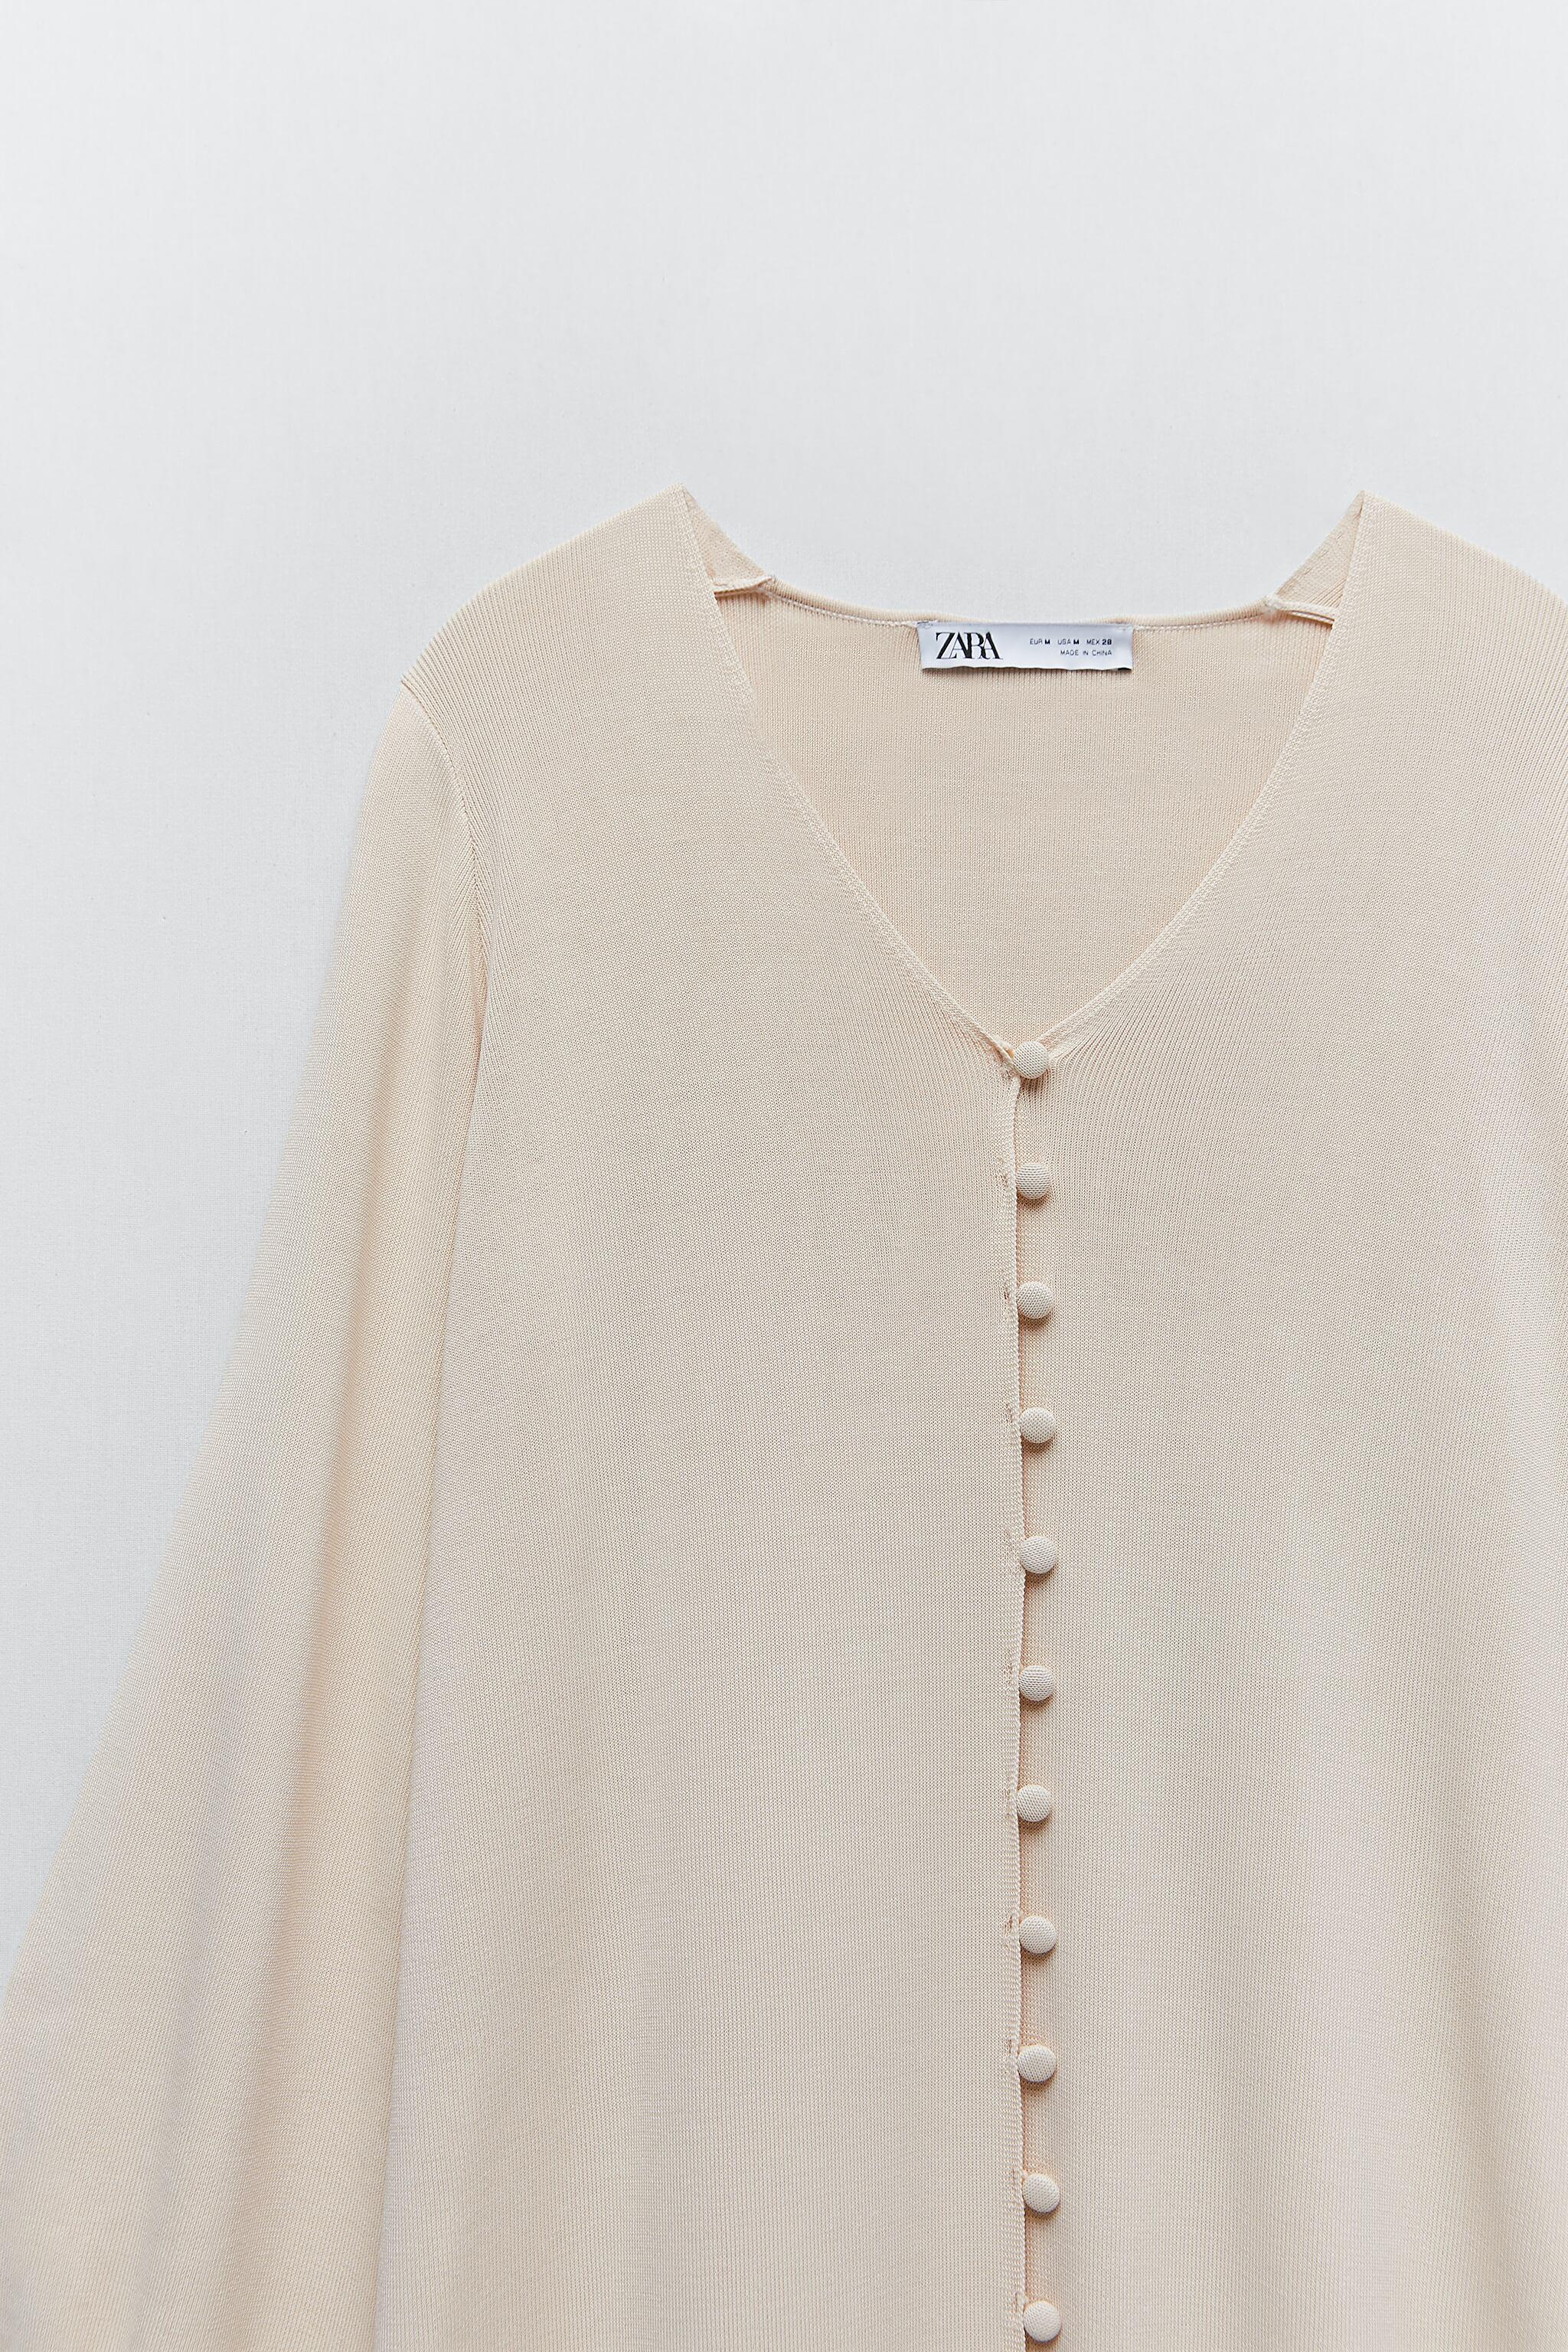 LIMITED EDITION BUTTONED KNIT DRESS 10